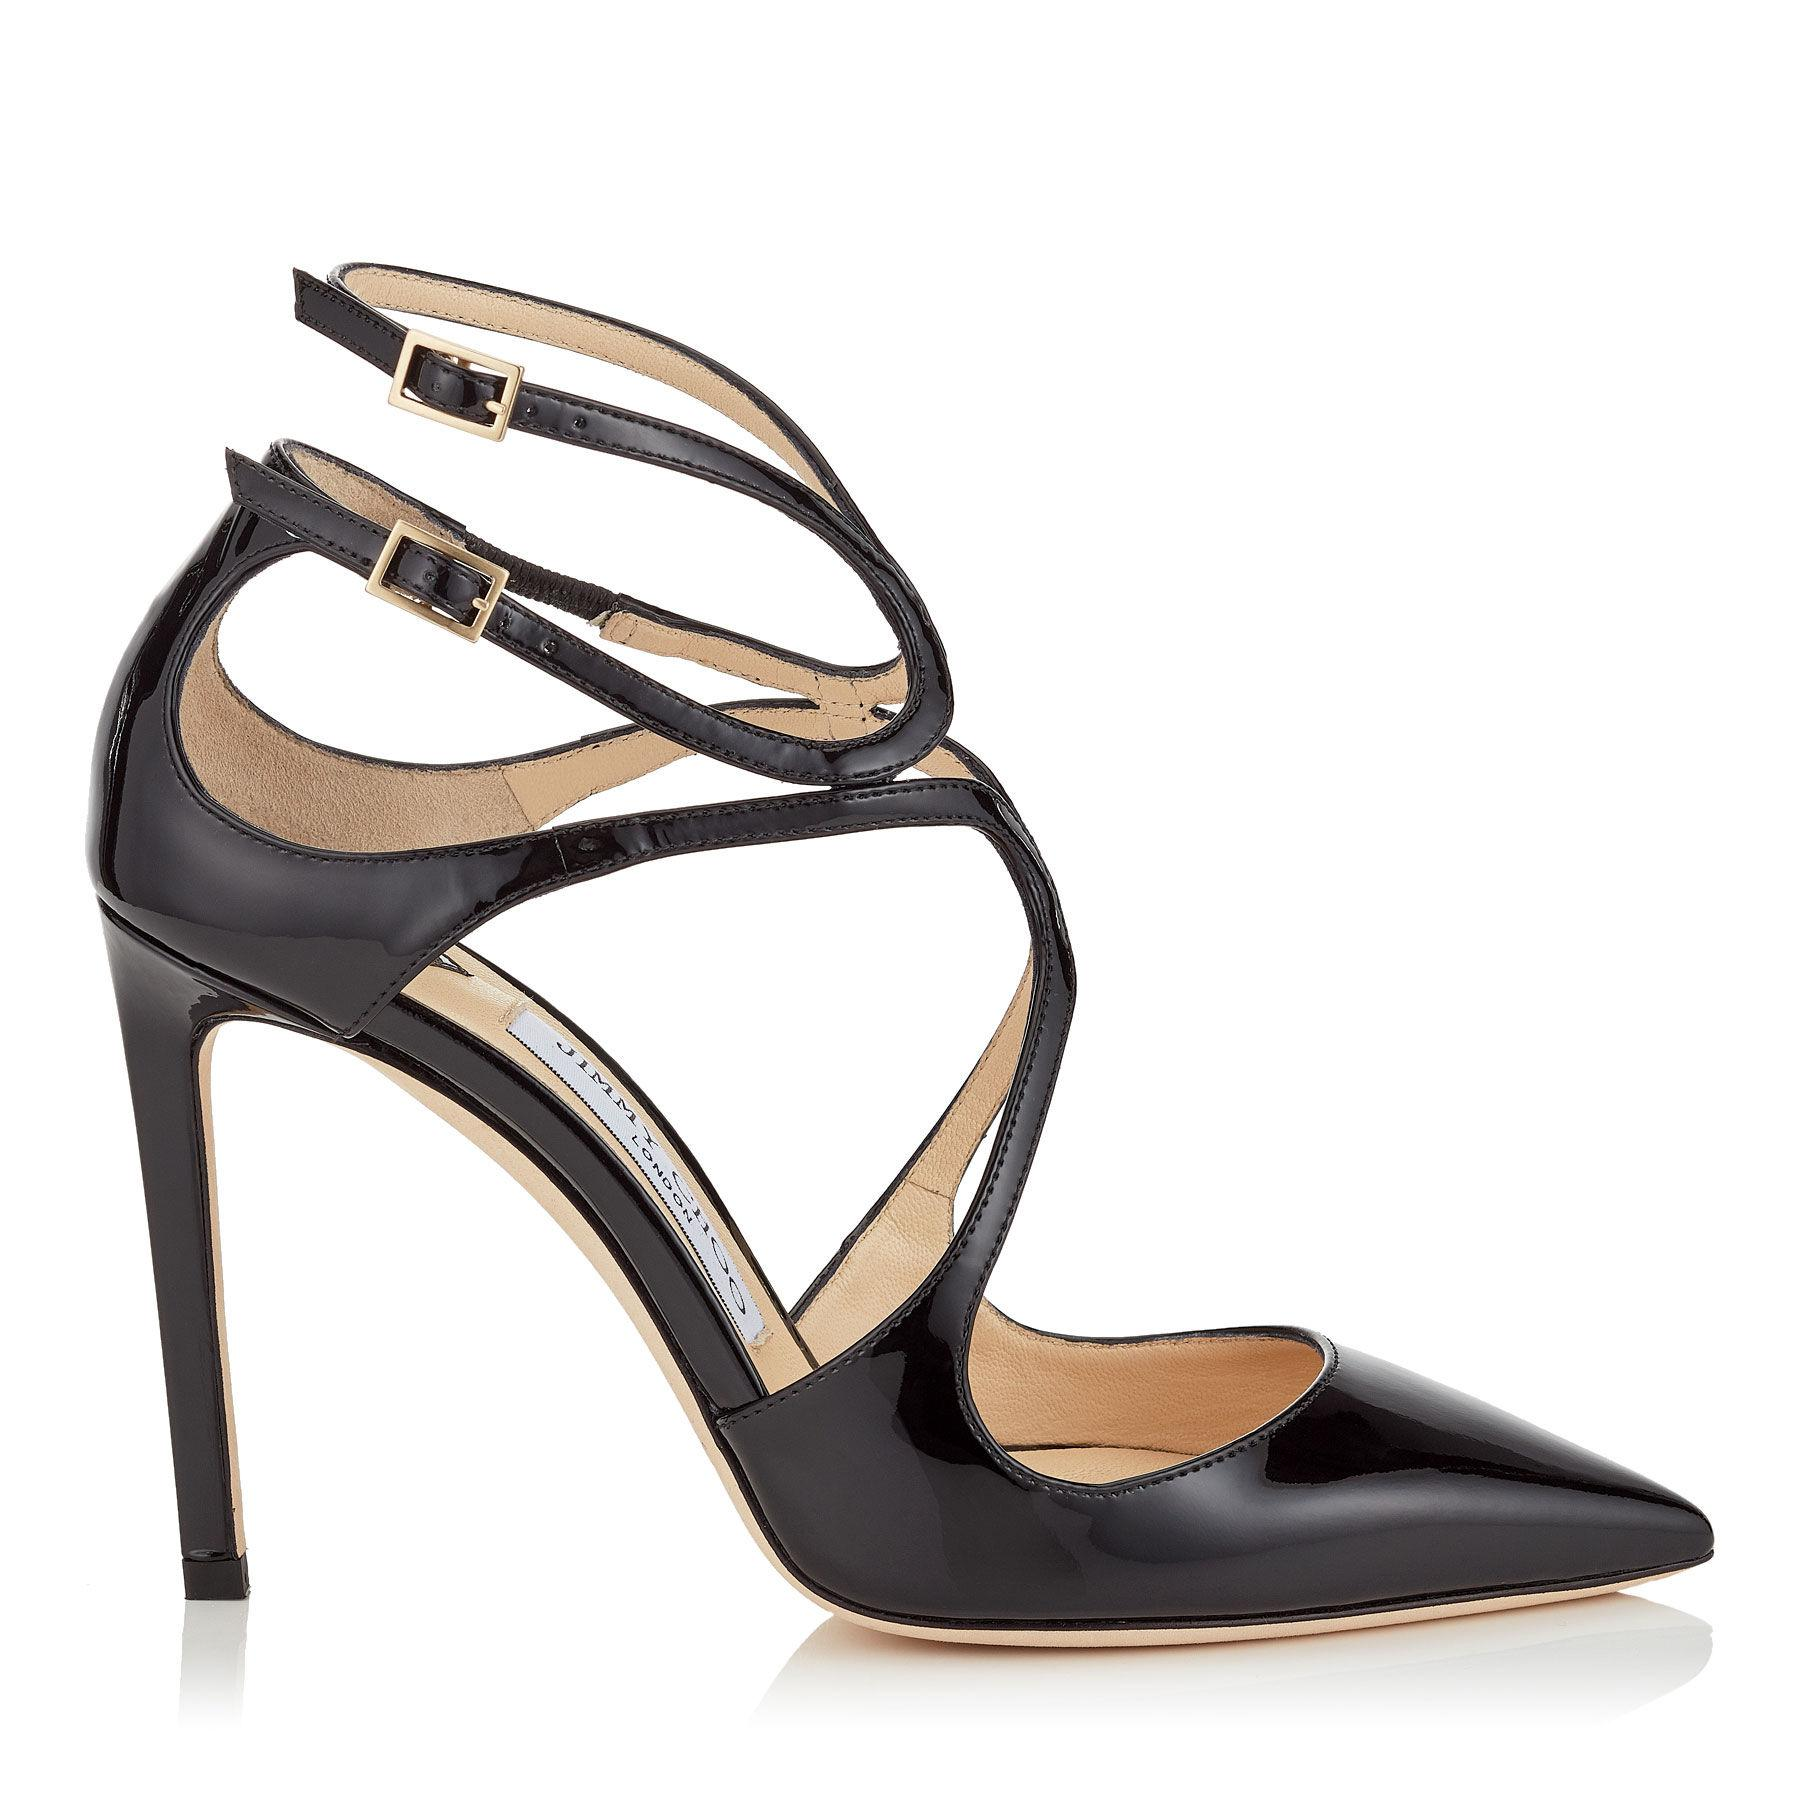 Jimmy Choo Black Suede Lancer 100 Heels outlet store sale big sale pay with visa online discount low shipping fee cheap sale looking for G4eWIVBu0